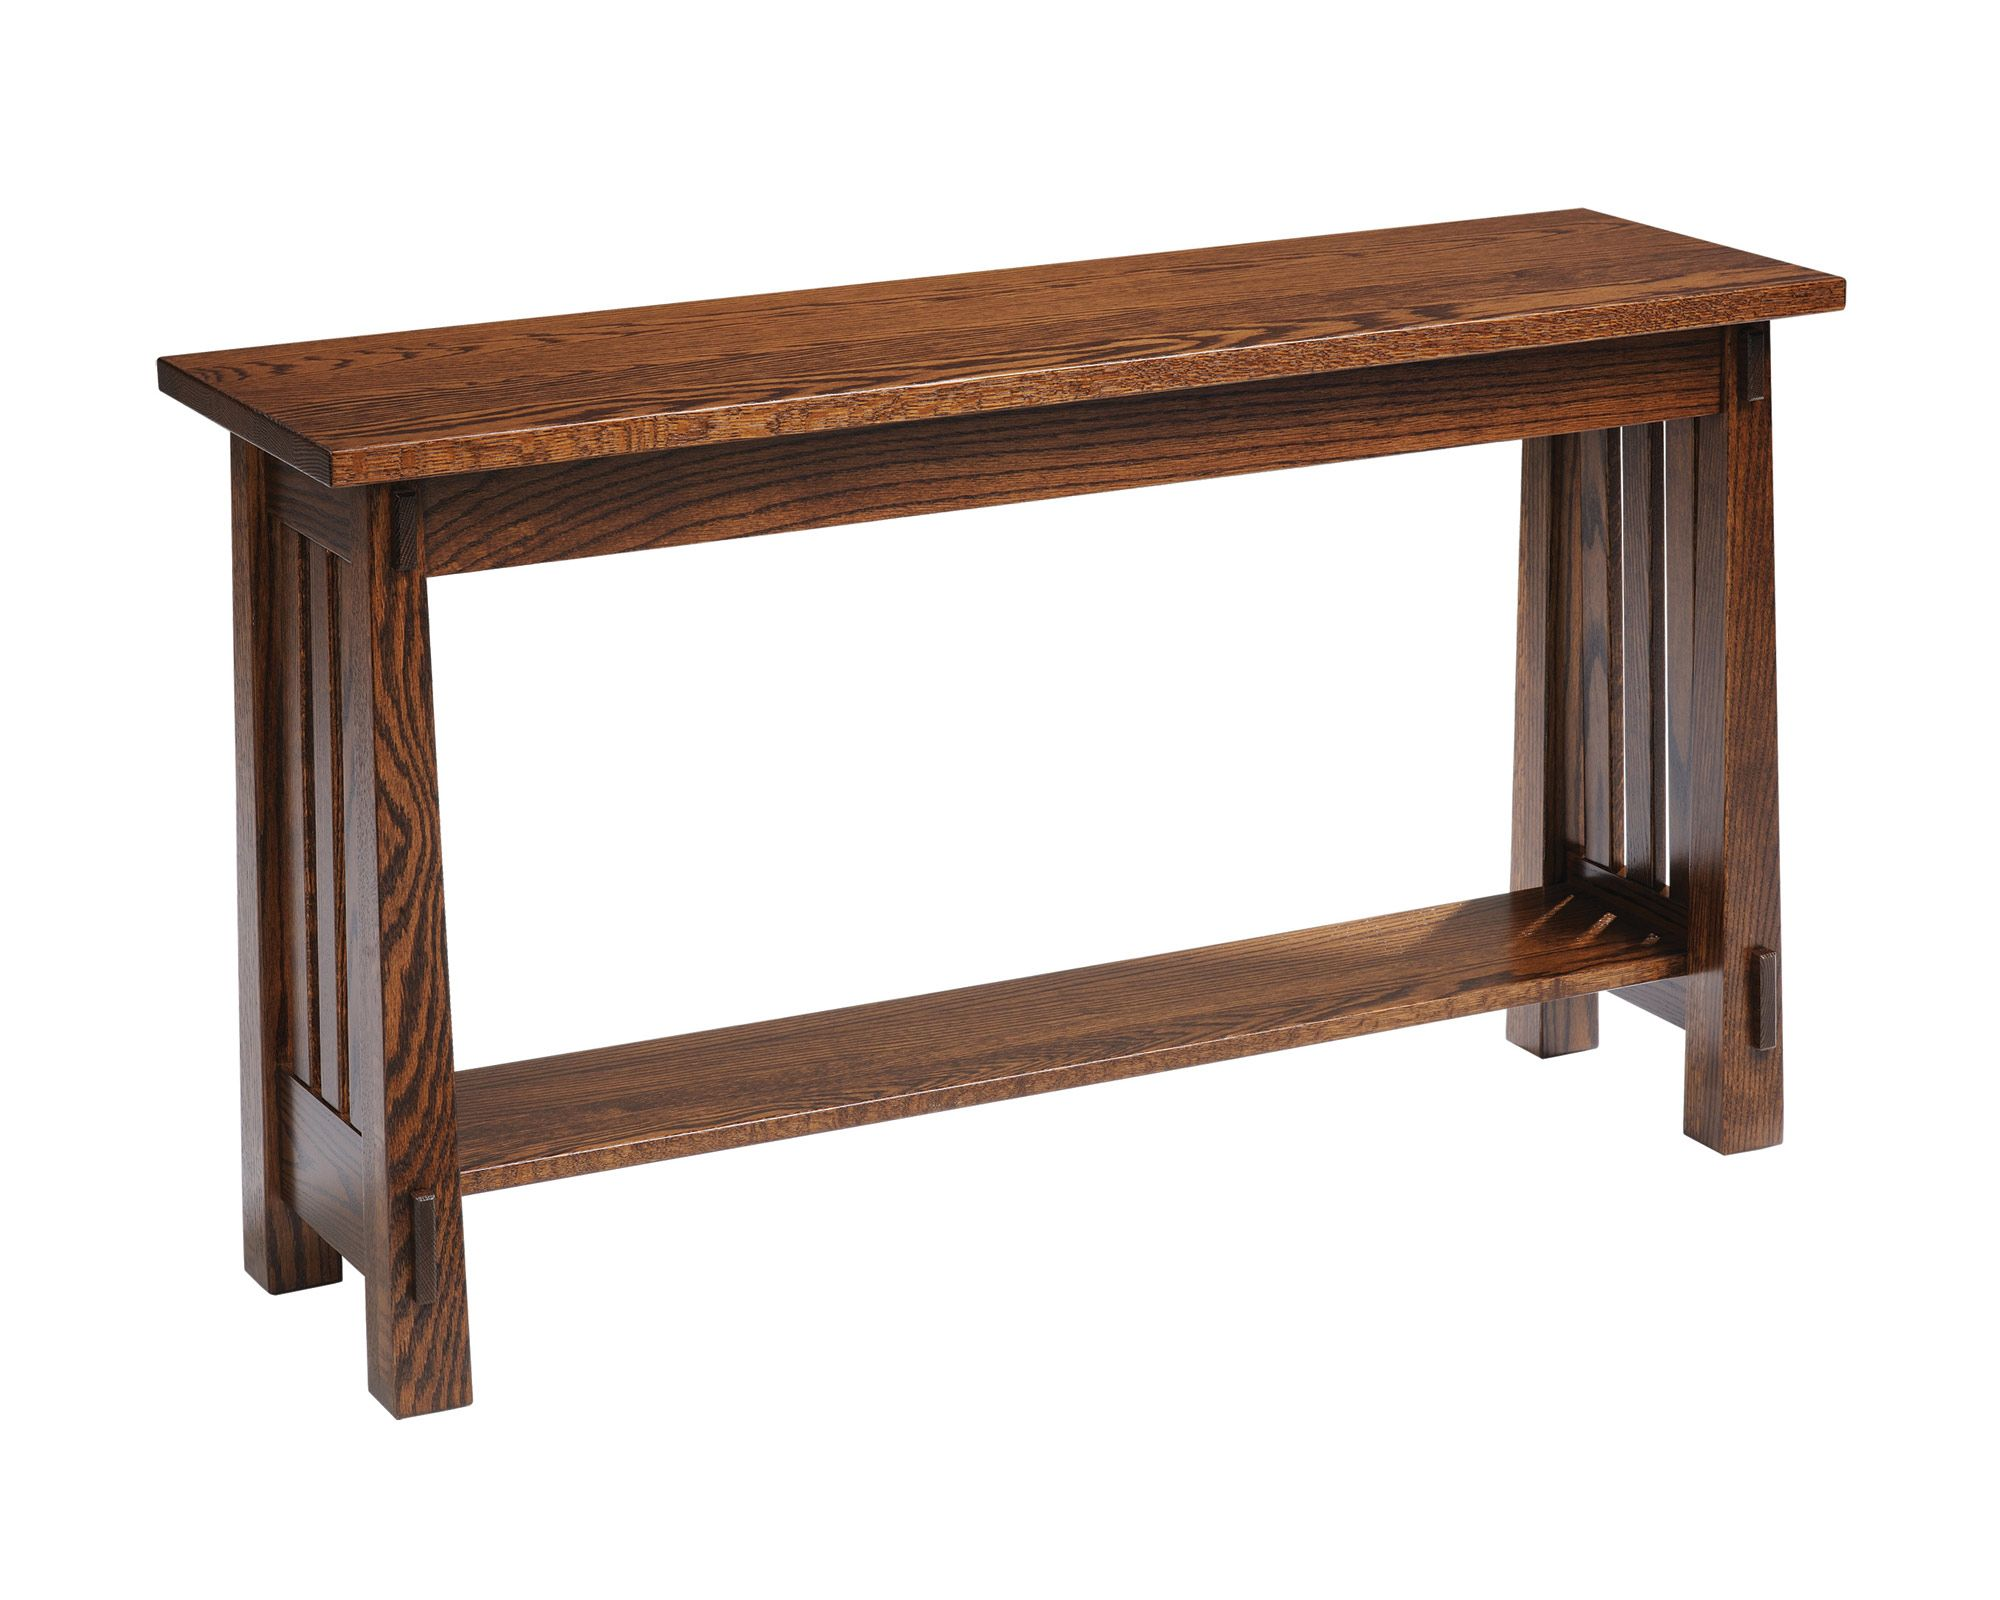 Country Mission Oak Sofa Table Amish Furniture Solid Wood Mission Shaker Furniture Chicago Area Illinois Furniture I Like Amish Furniture Country S